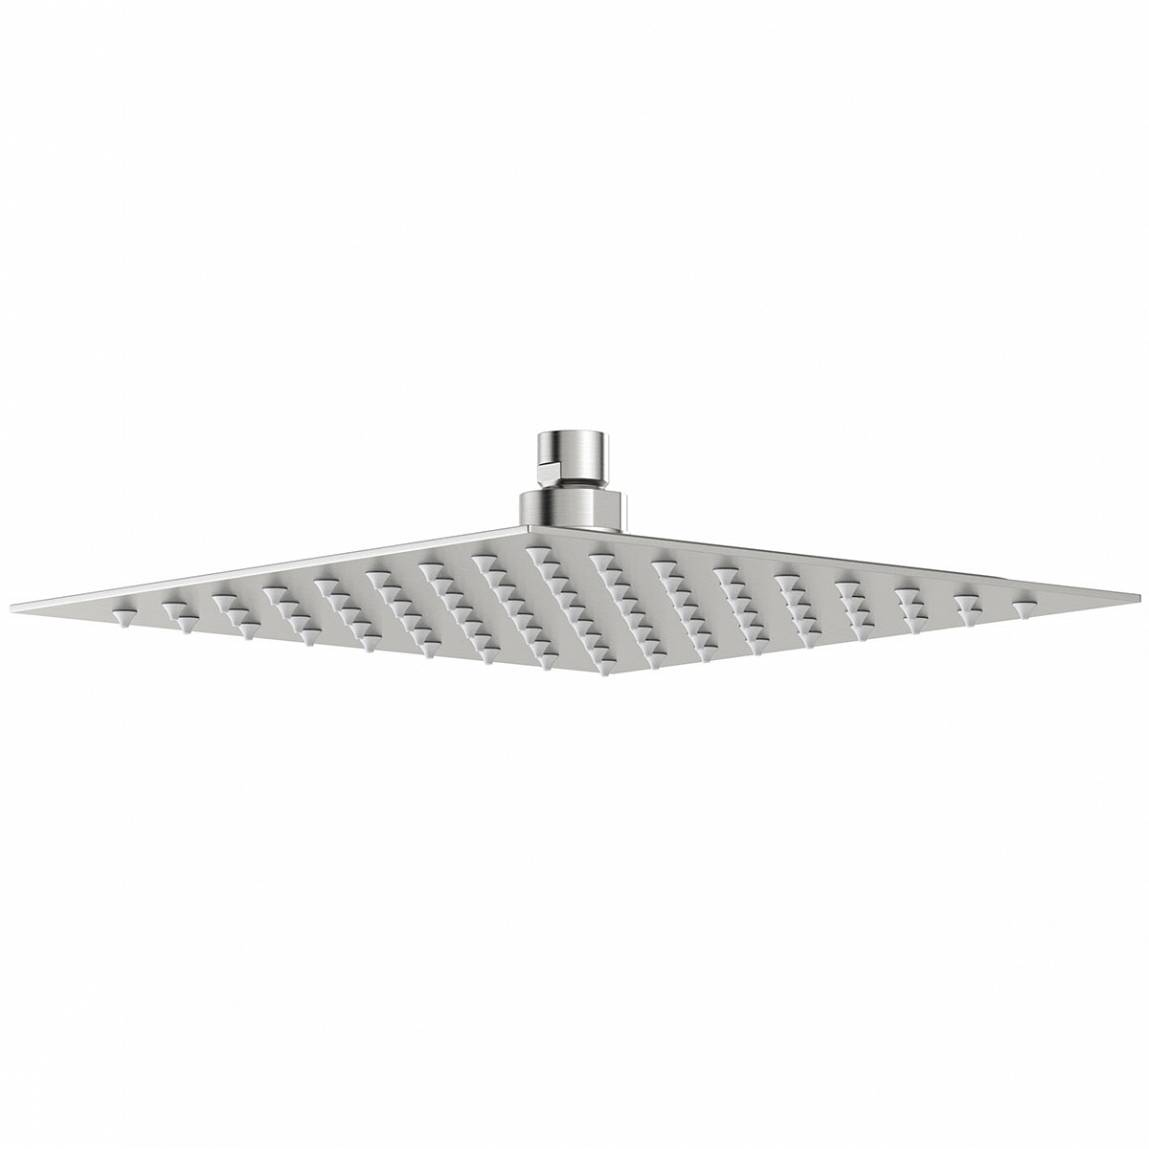 Image of Brushed Stainless Steel Waifer Shower Head Square 250mm